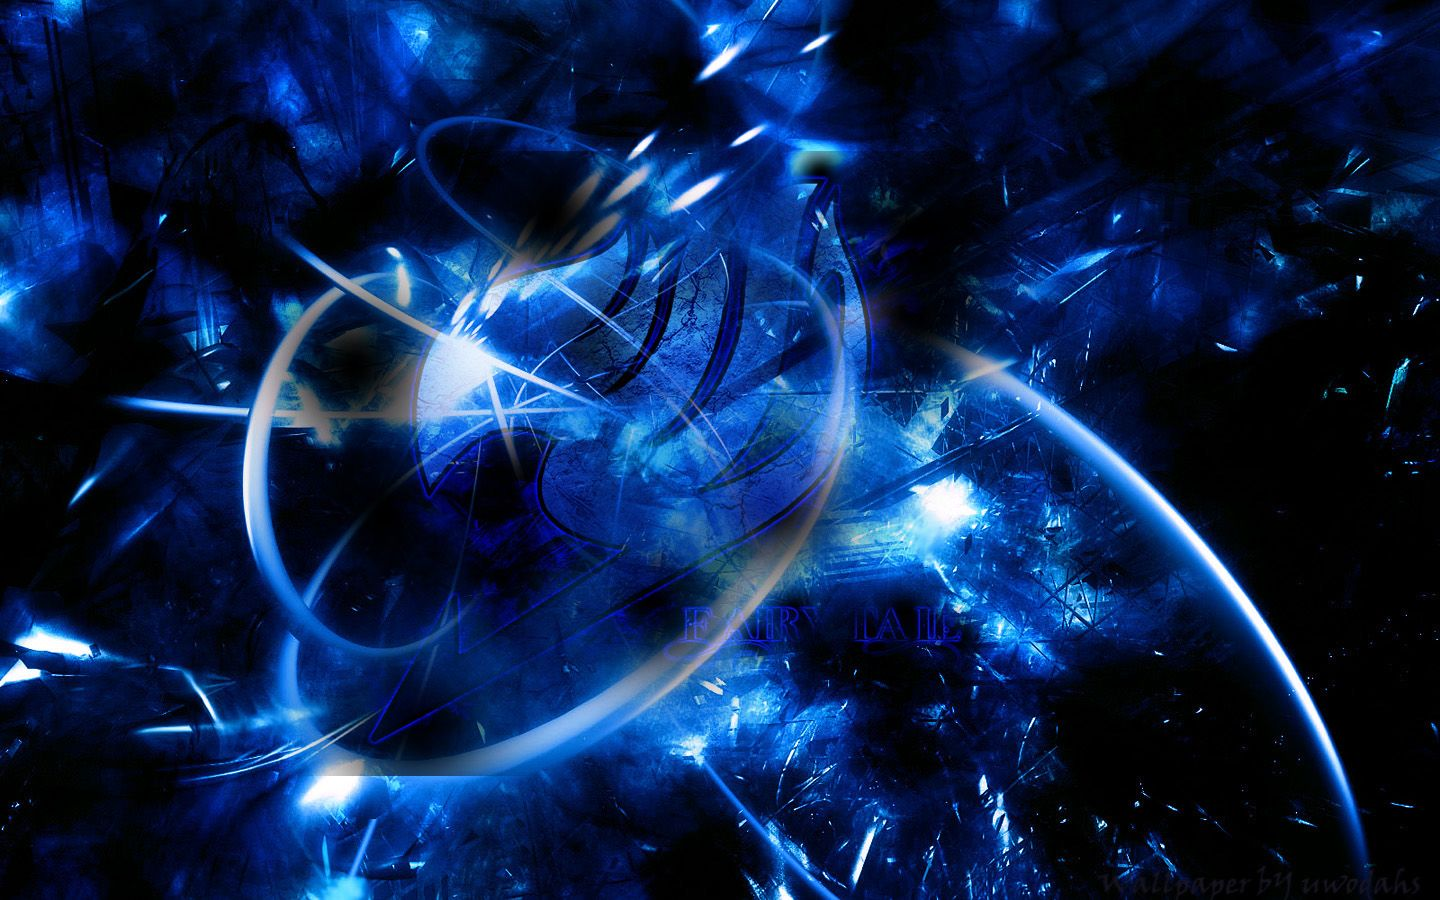 Fairy Tail Logo Wallpapers Images On Wallpaper 1080p Hd Fairy Tail Logo Fairy Tail Mirajane Fairy Tail